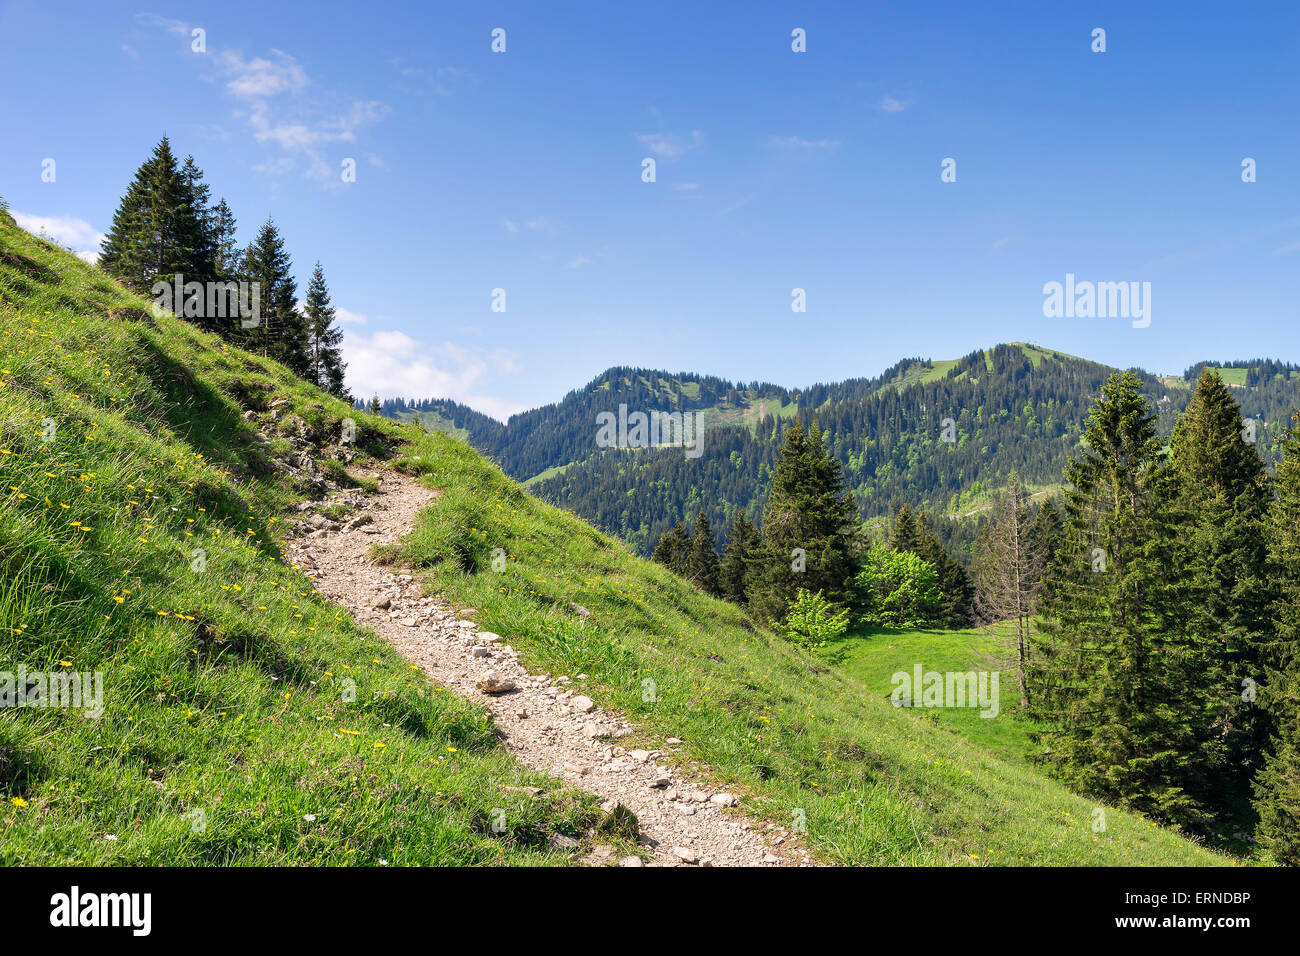 Ascent to Mount Jaegerkamp in the Alps in Bavaria in Germany - Stock Image